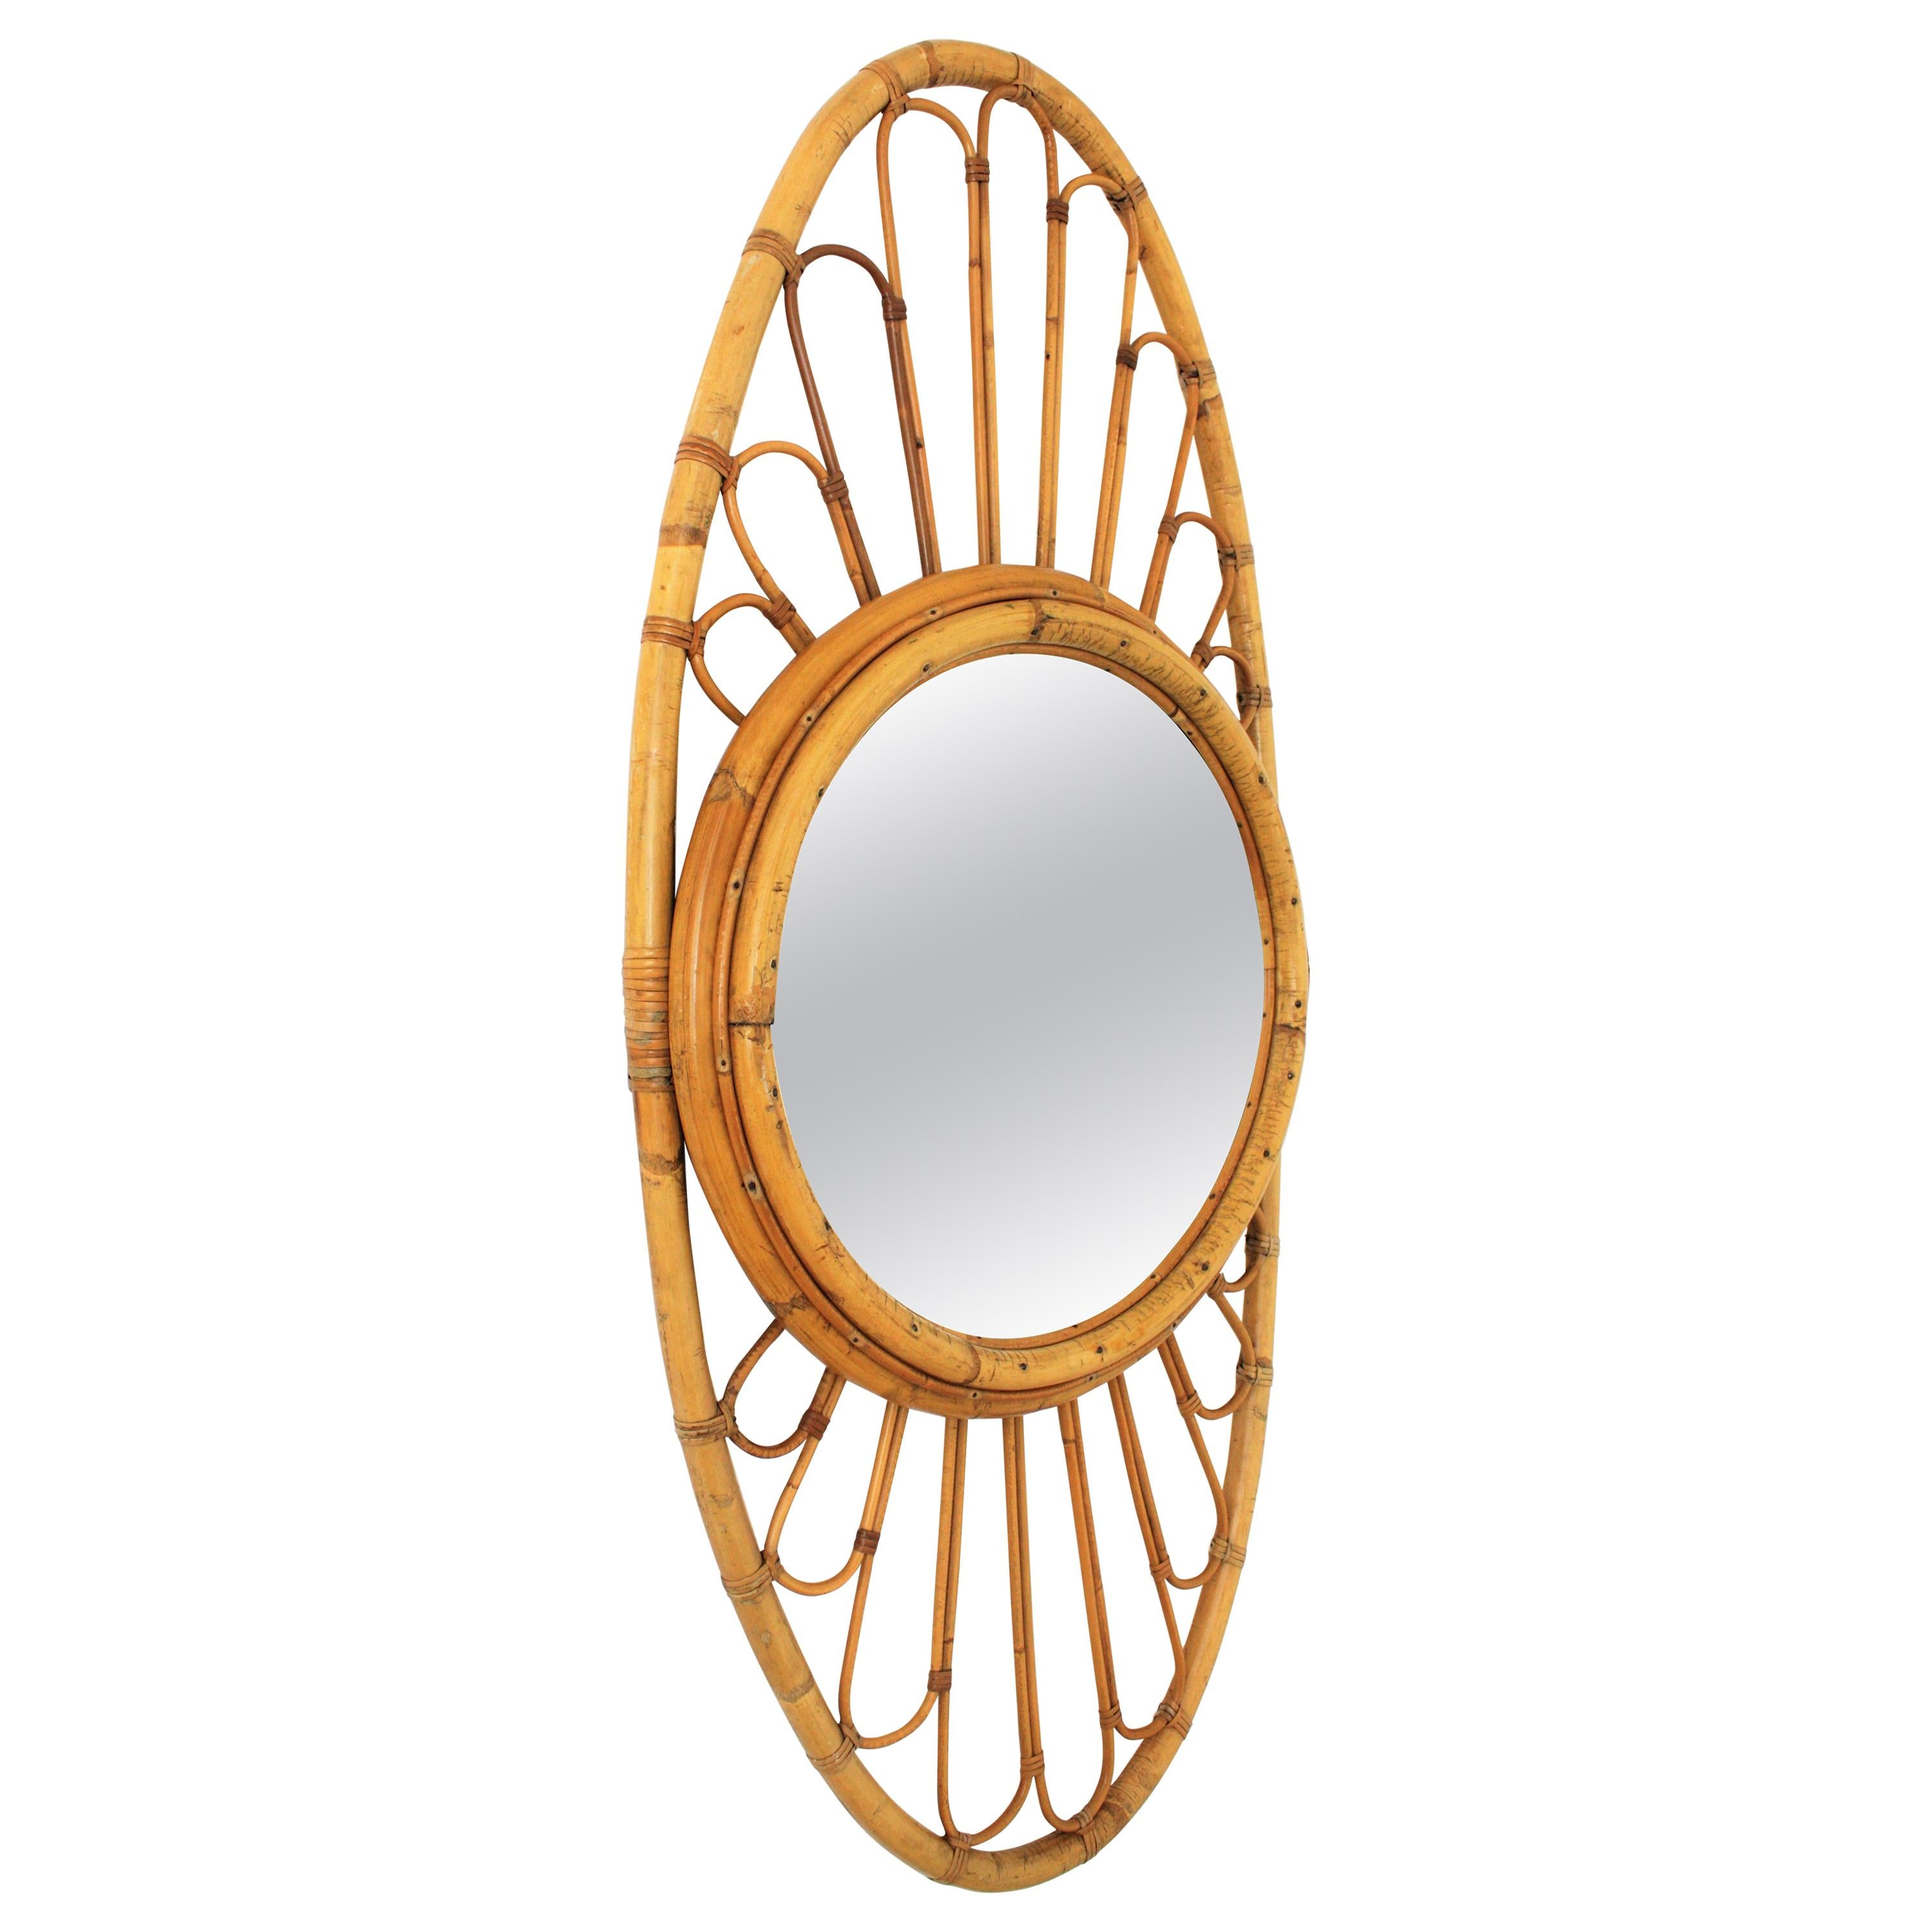 Bamboo and Rattan Large Oval Mirror, Spain, 1960s